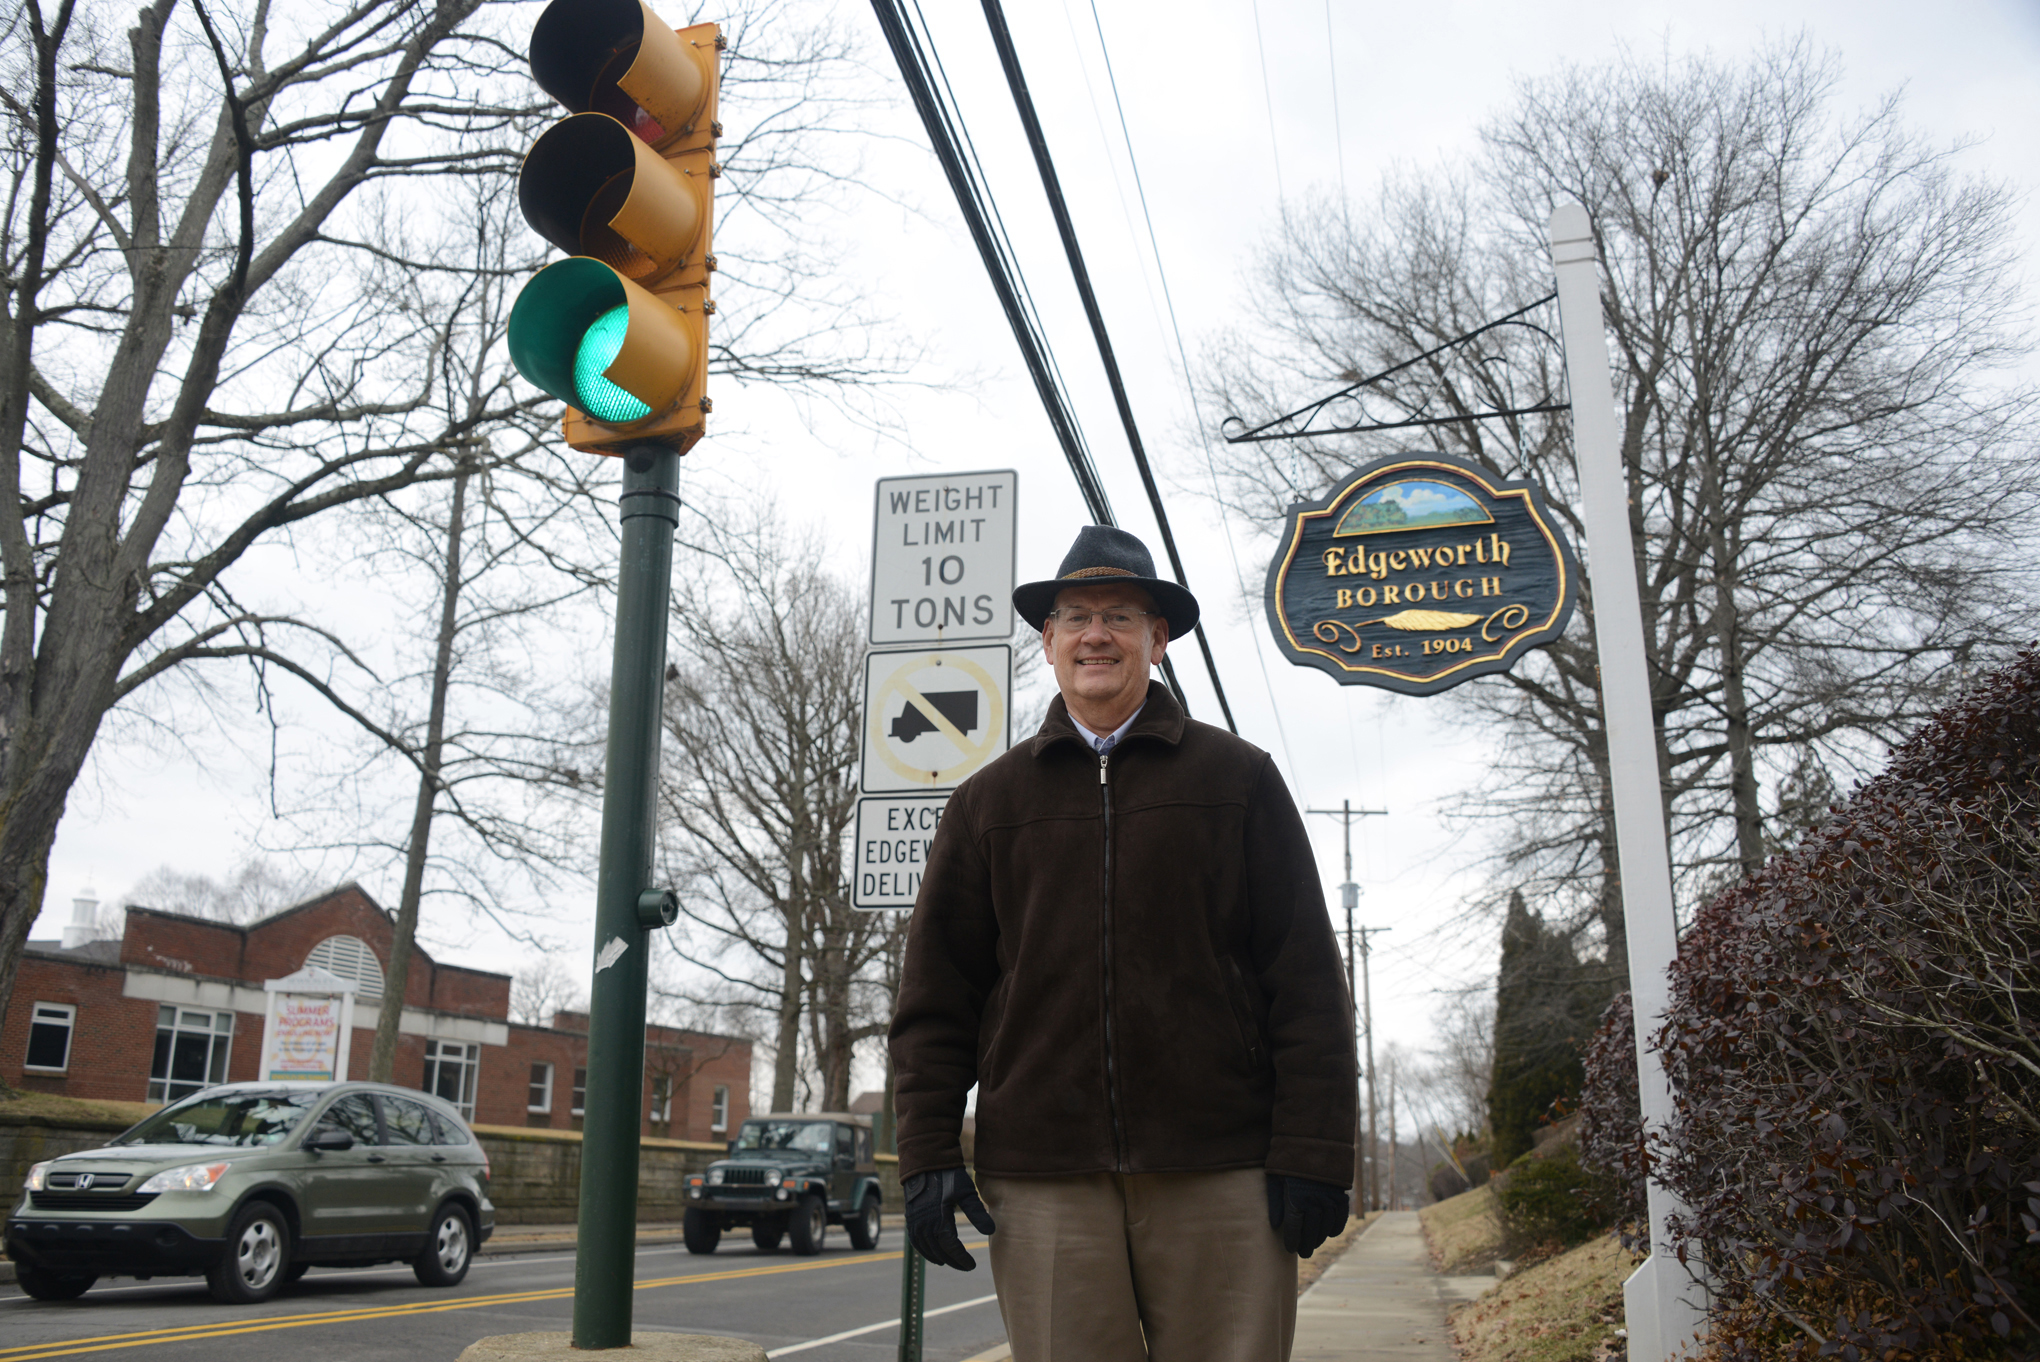 201403225lfLEDStreetLights In Edgeworth, borough manager Marty McDaniel saved a lot of money switching his stop lights to LEDs. Here he is at the corner of Beaver Street and Academy Avenue.